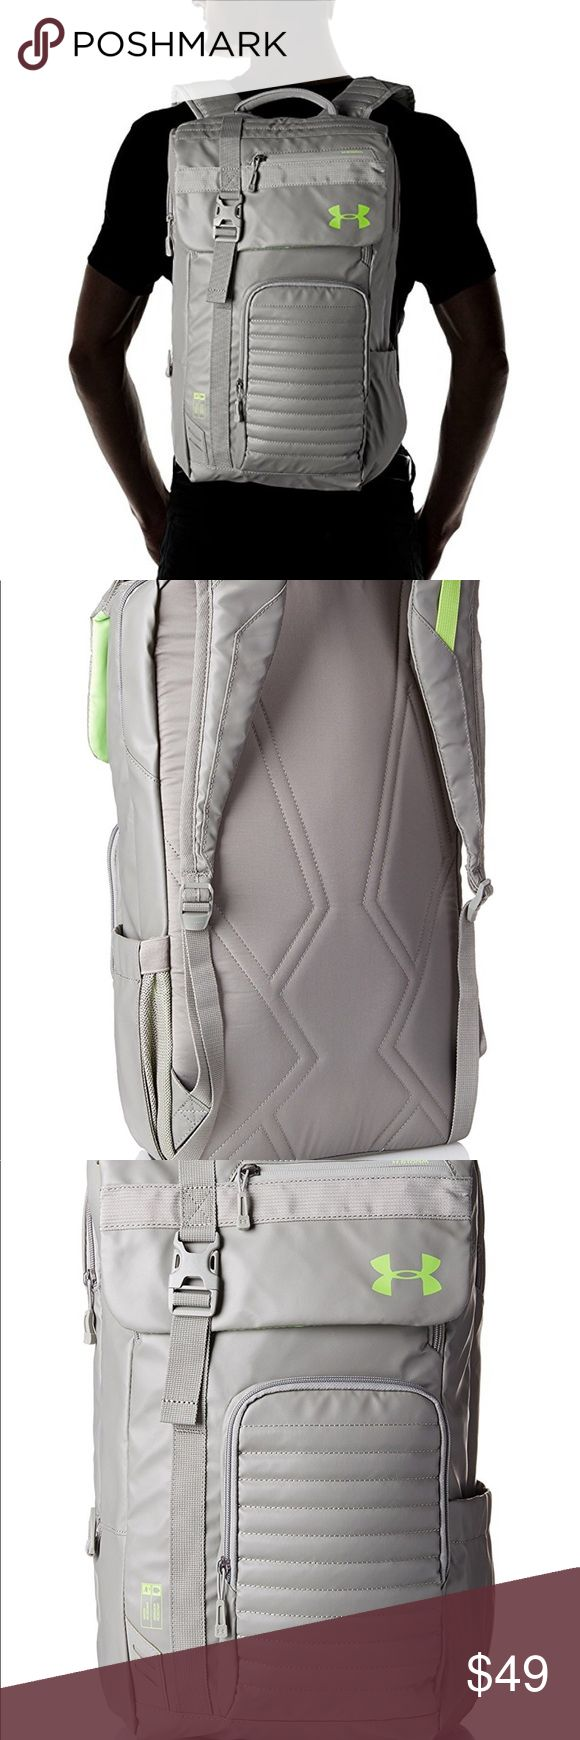 Under armor backpack brand new w/tags perfect size Secure, wide-mouth, top-entry compartment allows you to easily load & unload. UA Storm gear uses a finish to repel water without sacrificing breathability. Foam reinforced panels help protect your gear. Soft lined laptop sleeve-holds laptop. Adjustable, padded, Heat Gear shoulder straps for total comfort. Ergonomic foam back panel for comfortable wear. PU-coated open pocket on side, ideal for a water bottle. Accessible top front pocket…